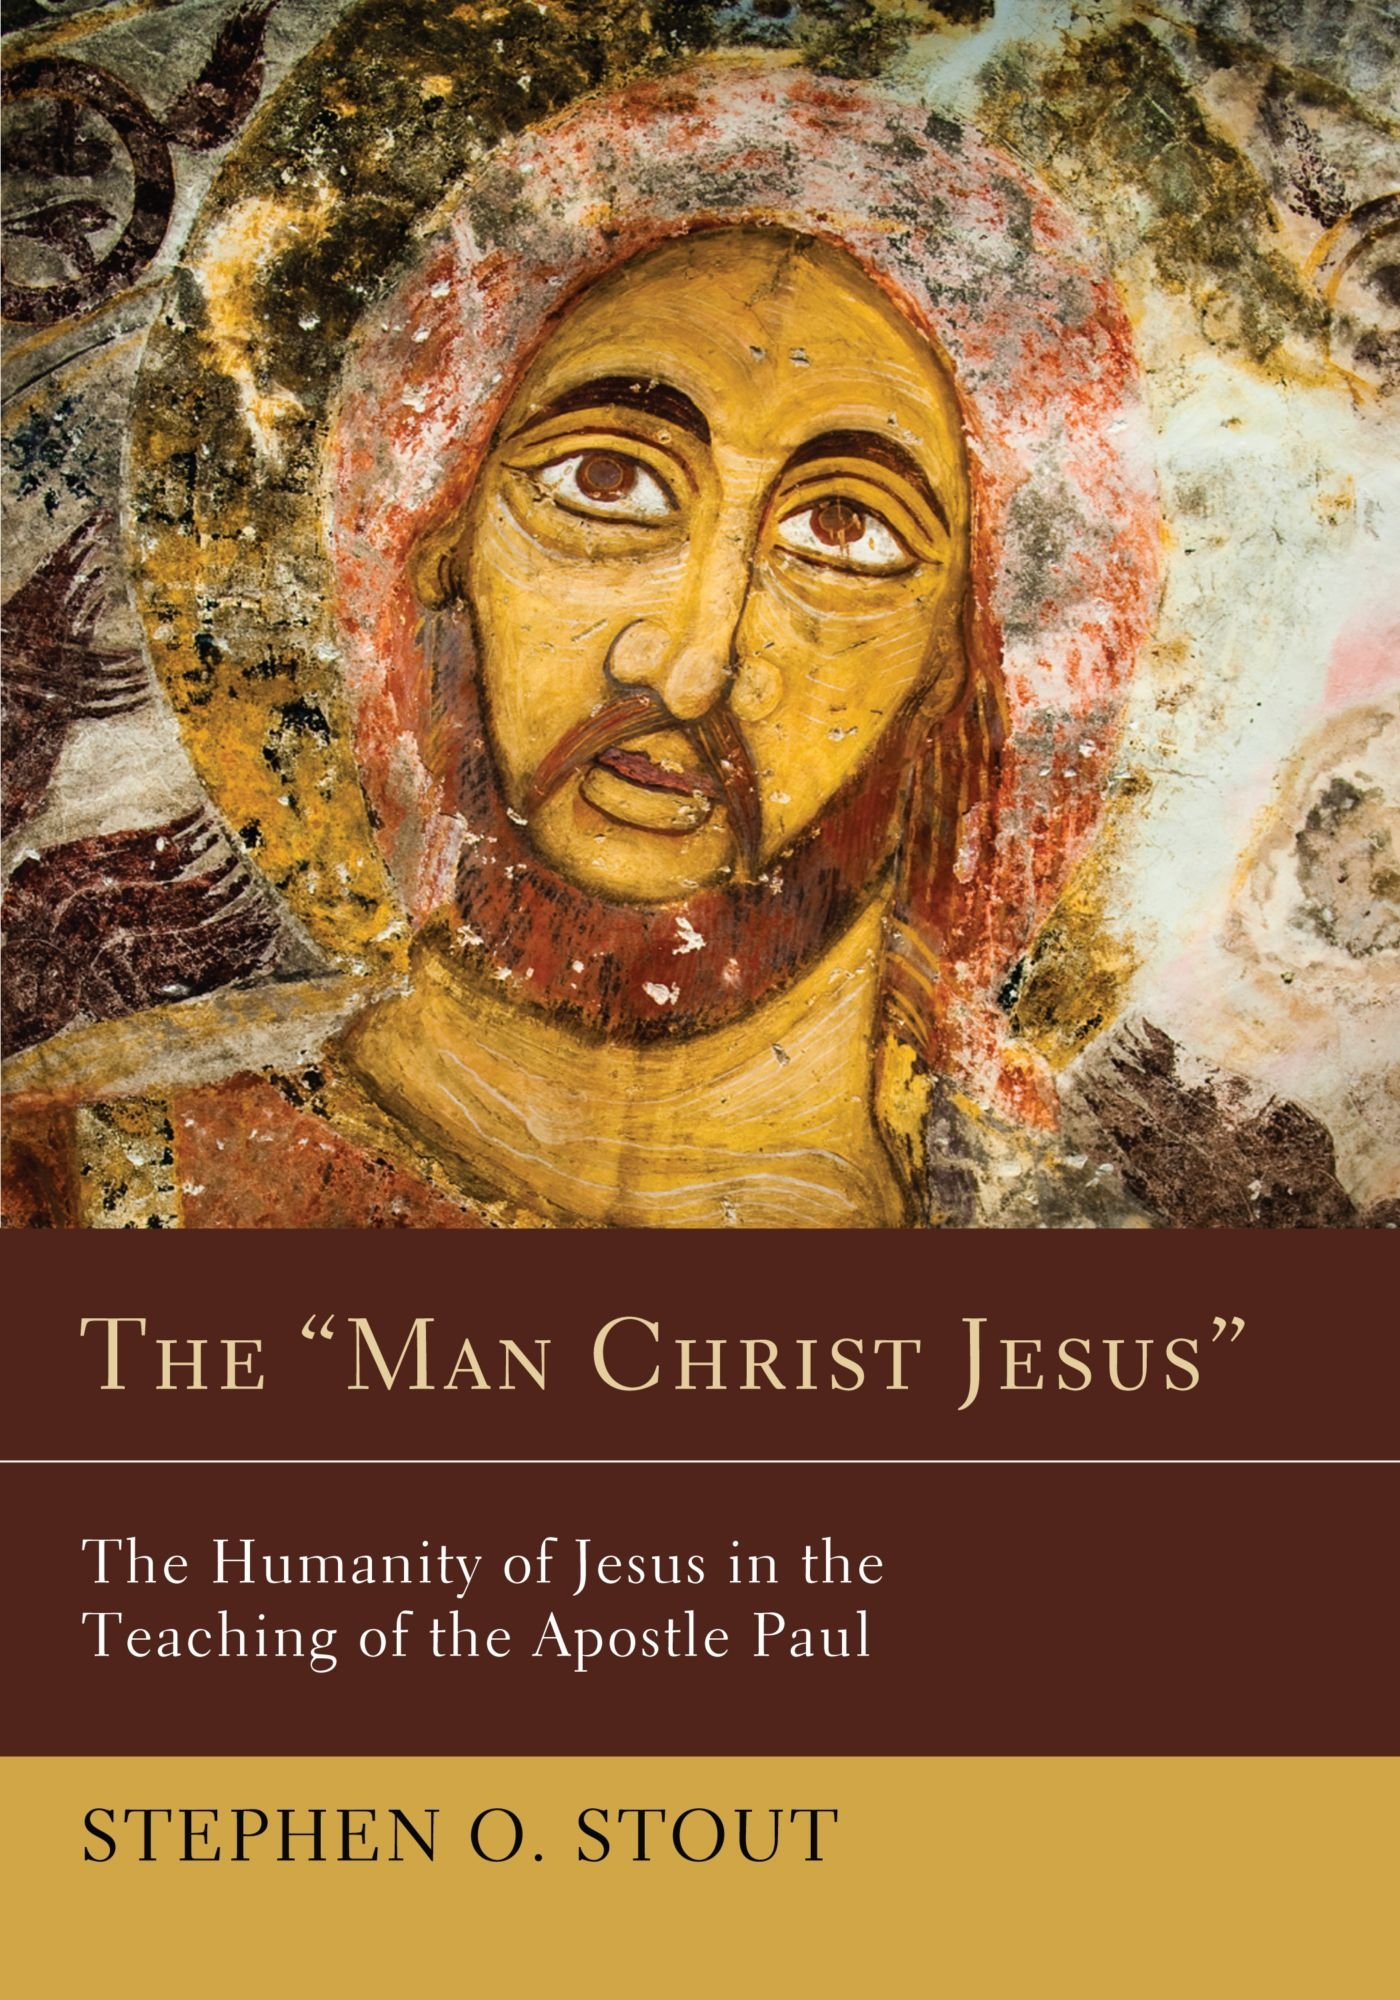 "The """"Man Christ Jesus"""": The Humanity of Jesus in the Teaching of the Apostle Paul pdf"